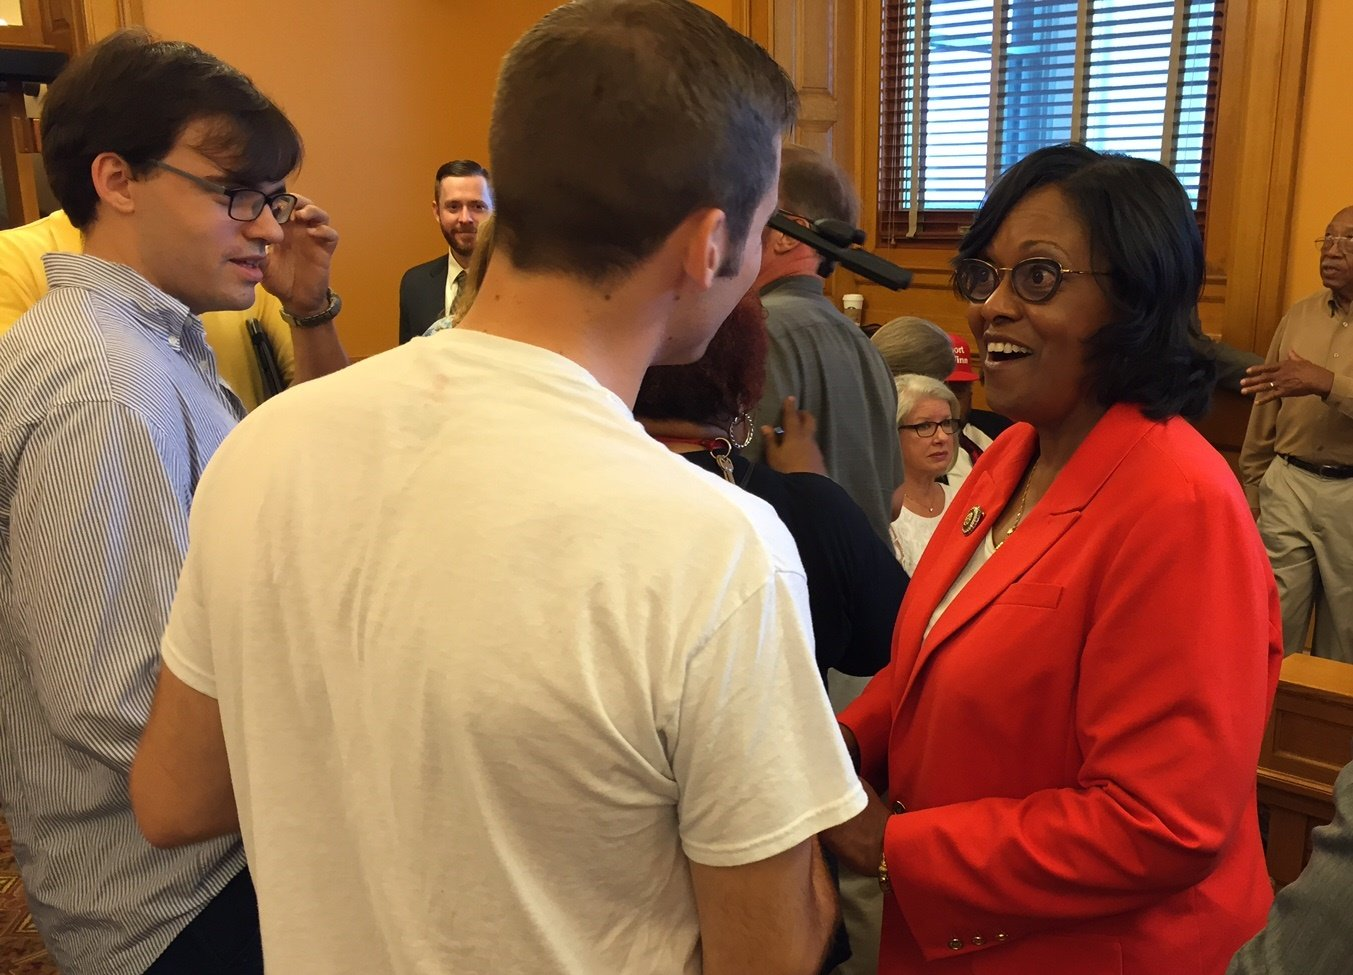 Winn meeting with people who attended the hearing in support of her. (Photo by Stephen Koranda)